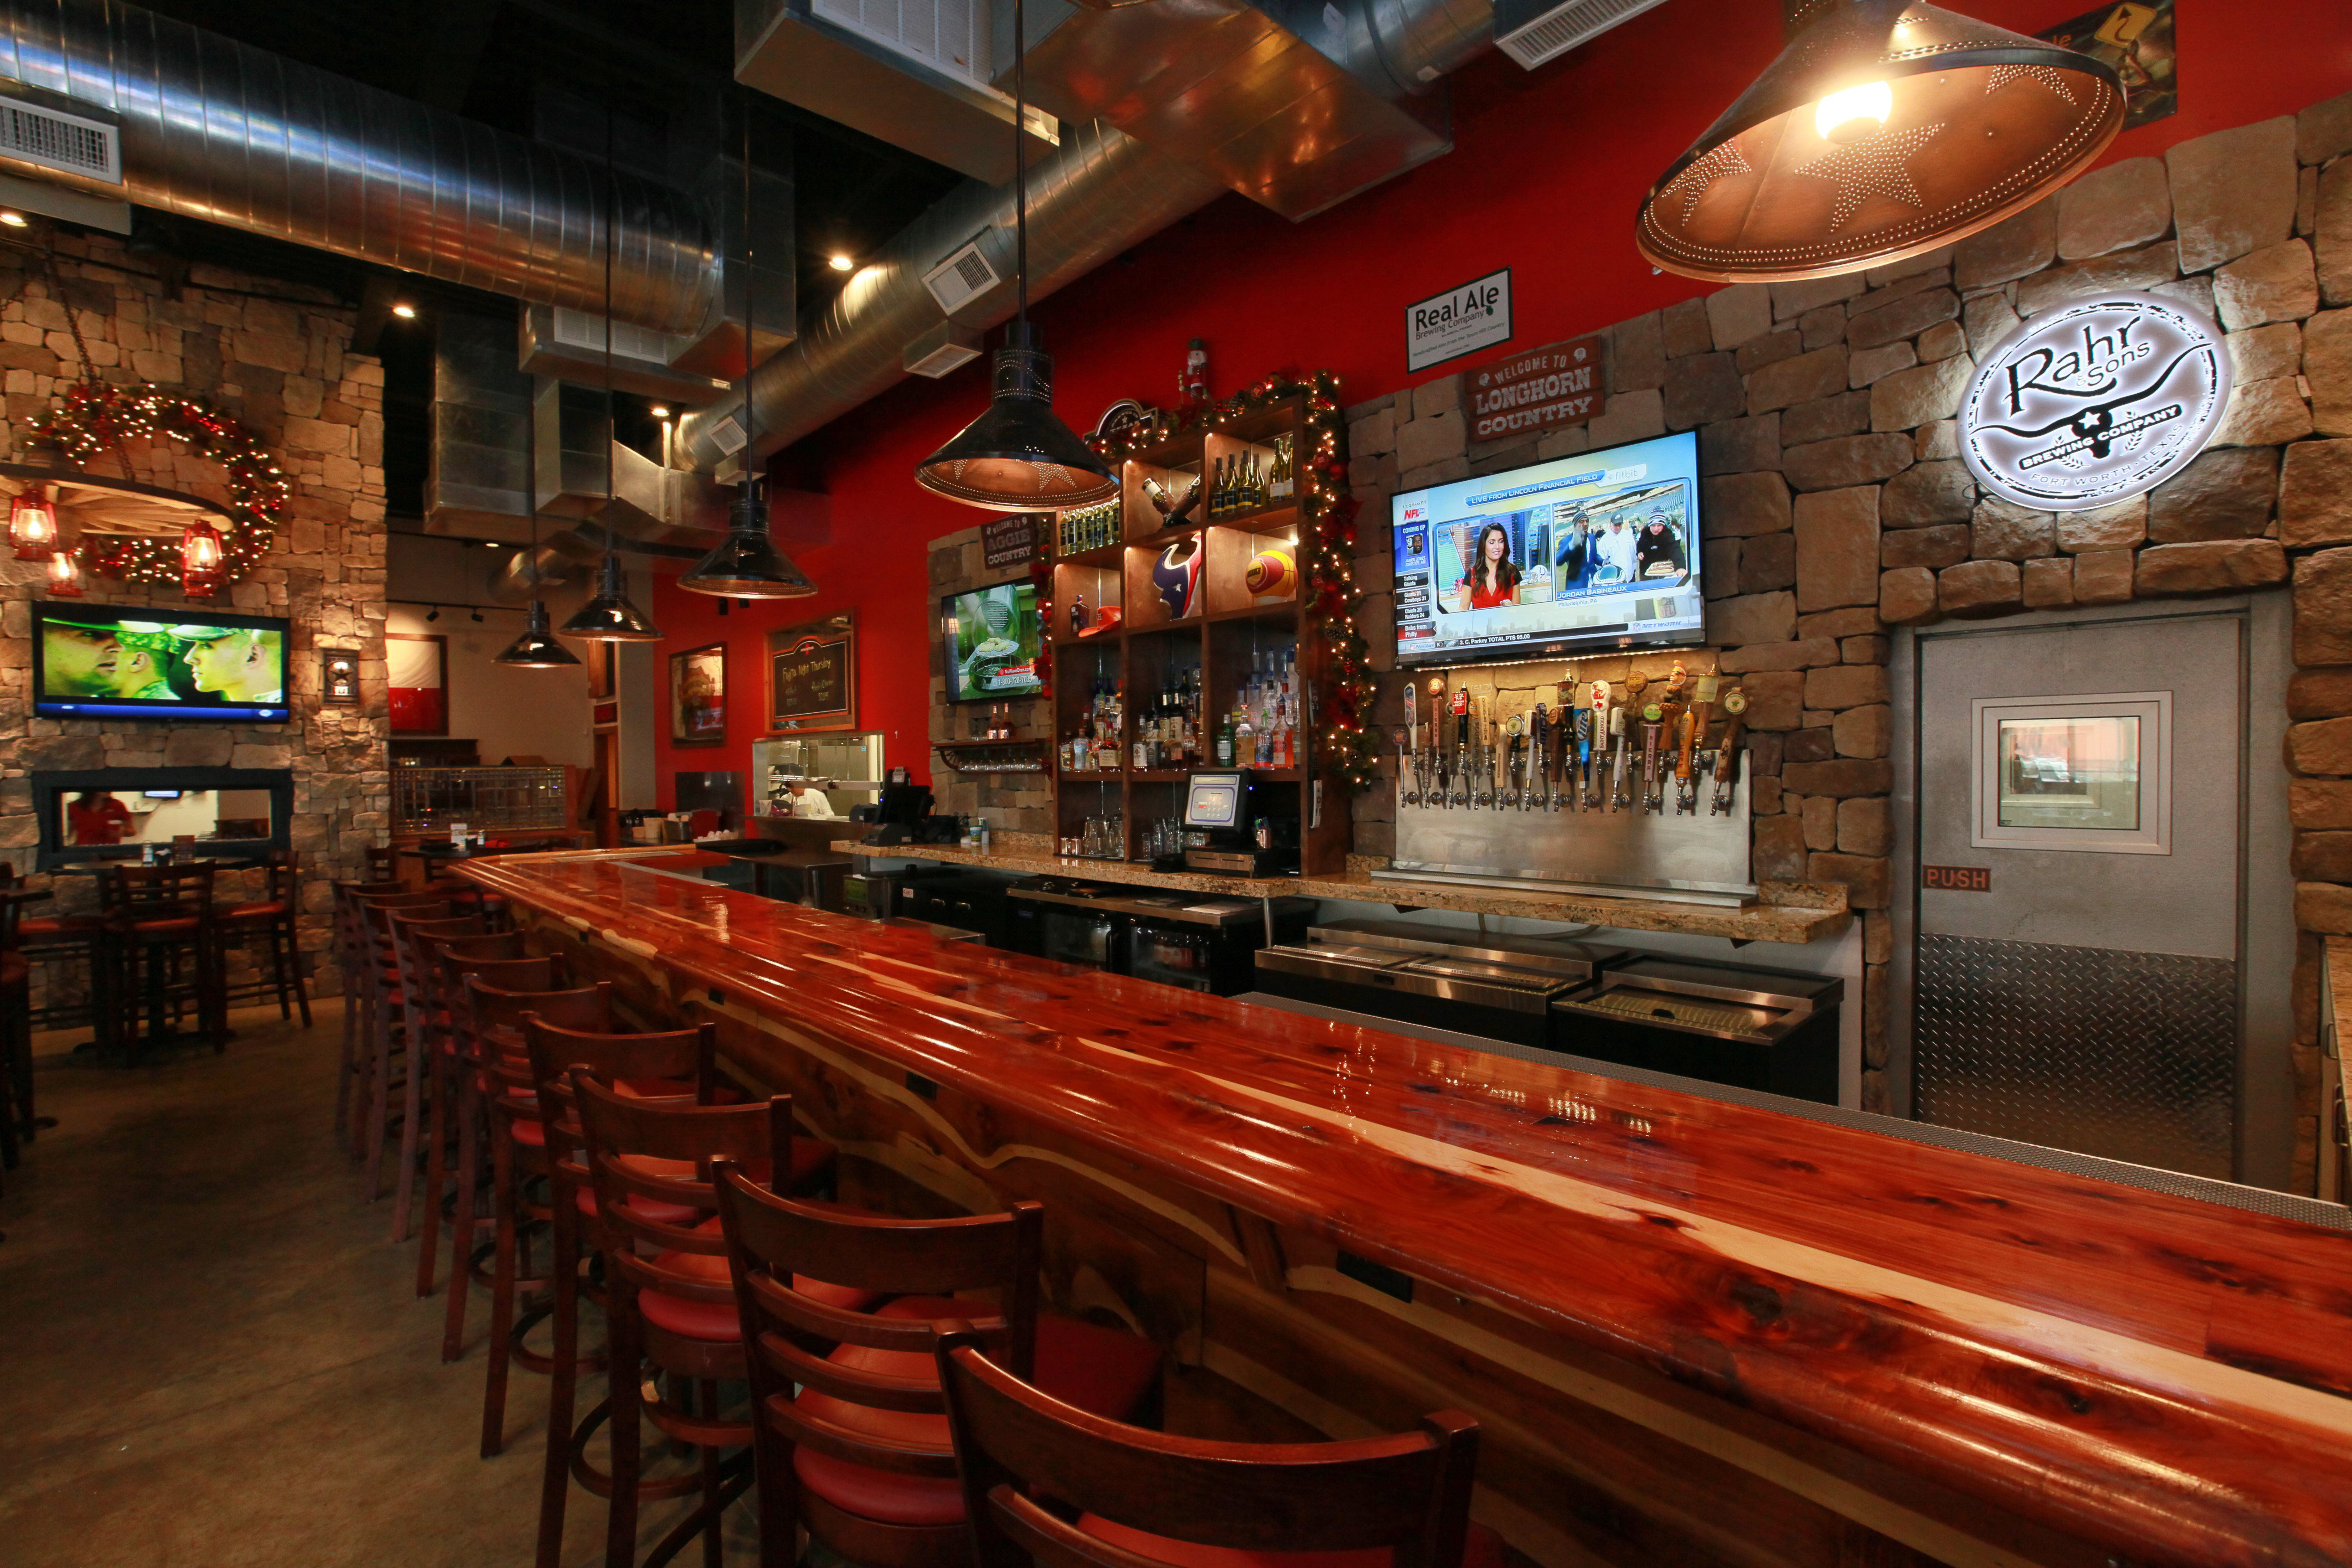 A Great Place To Dine And Spend Time With Friends Family In Katy Texas Mesquite Grill Offers Excellent Steaks Chicken More Wonderful